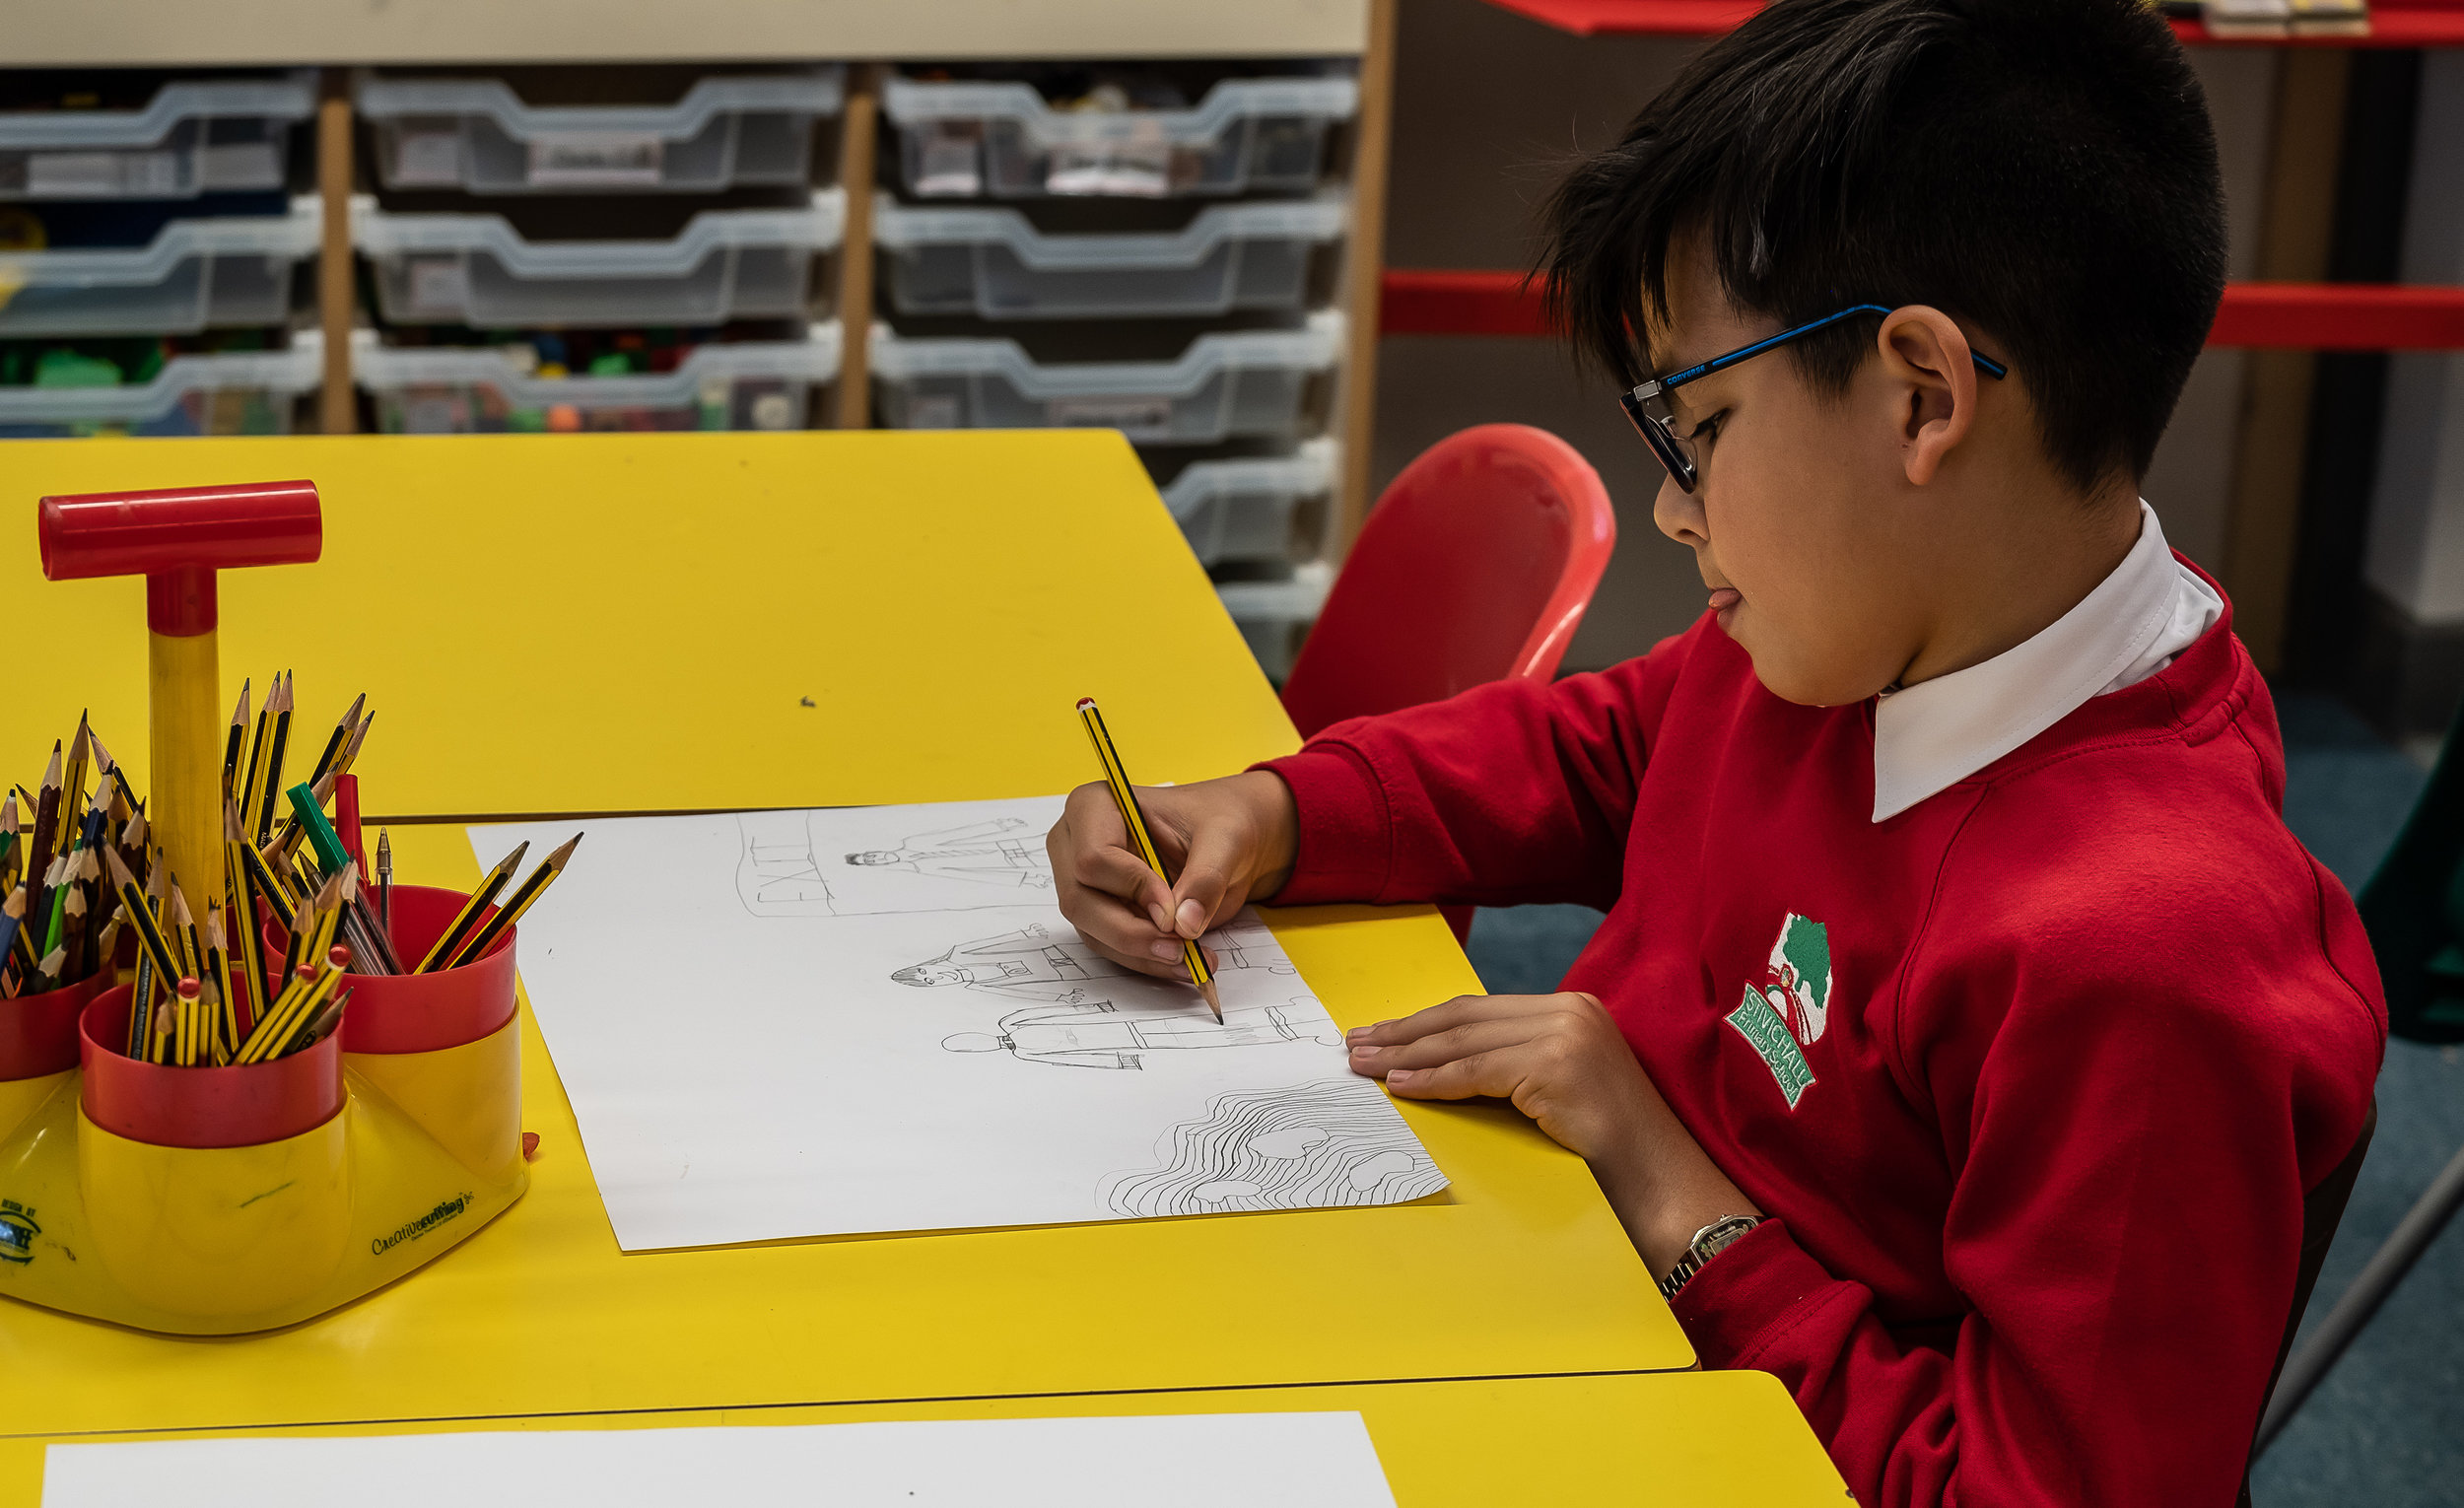 It was lovely to see the  karesansui  garden in this child's drawing. Photography by Clive Barda